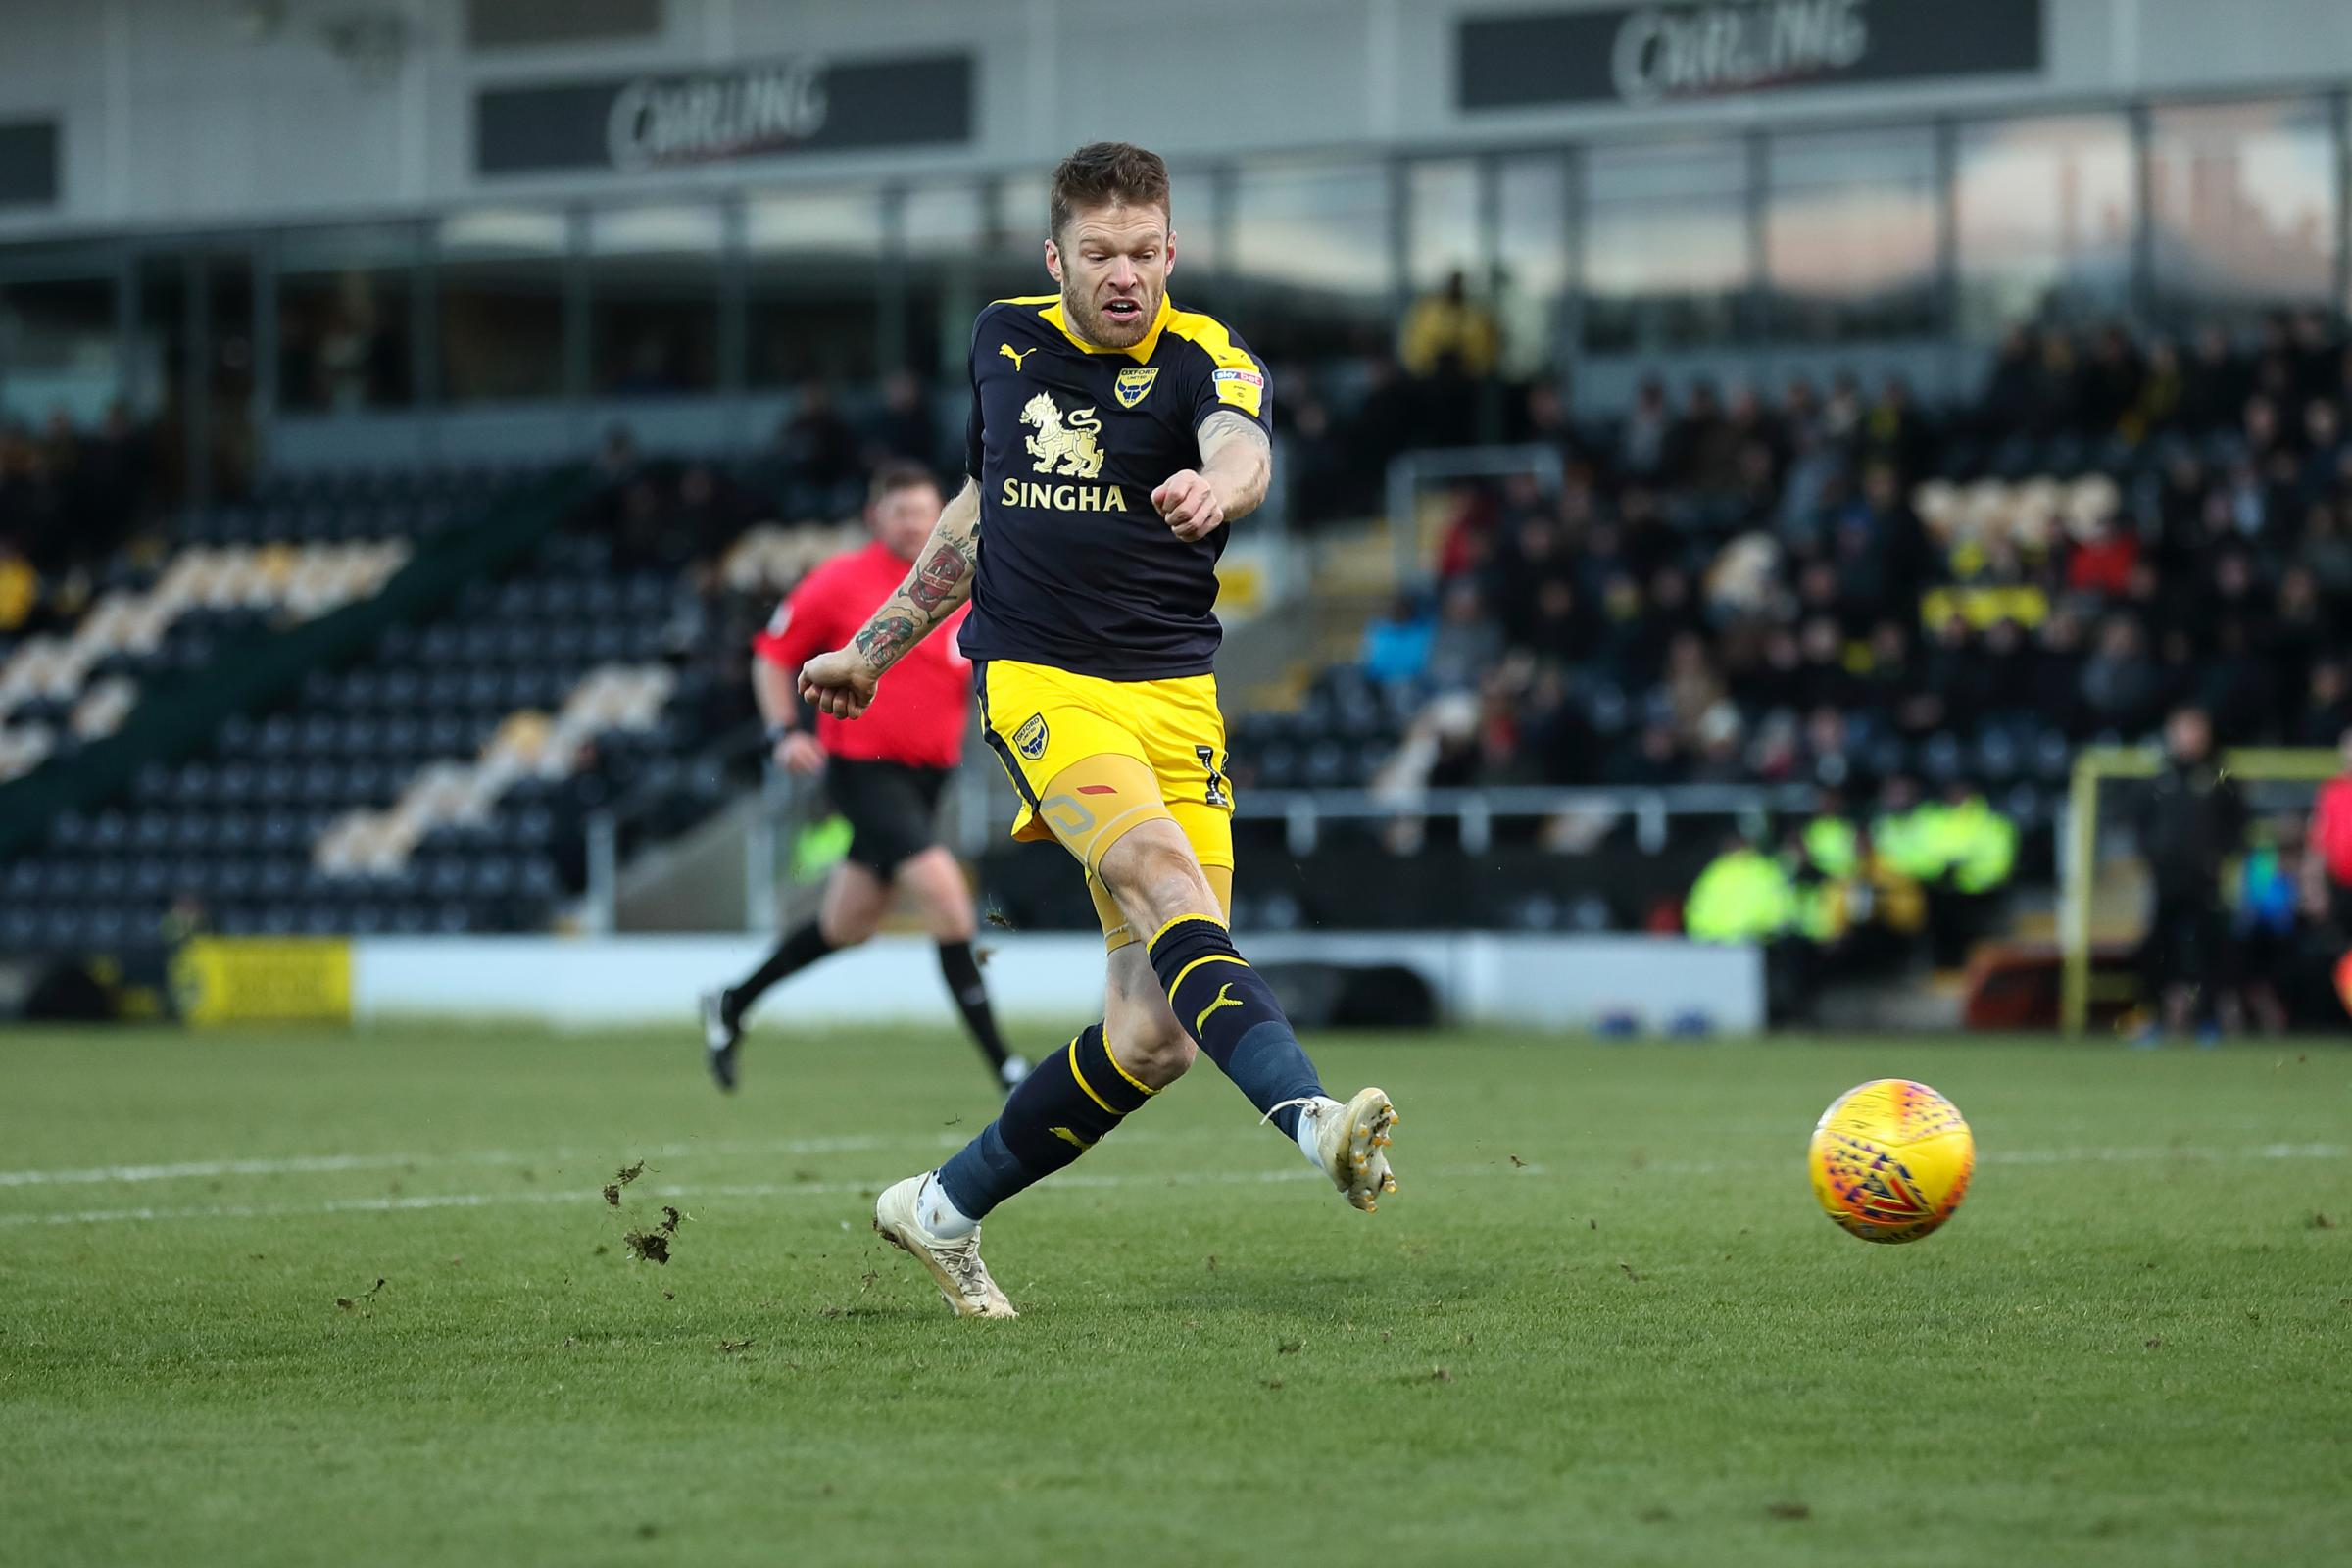 Jamie Mackie goes for goal in the 0-0 draw at Burton Albion earlier this month   Picture: James Williamson